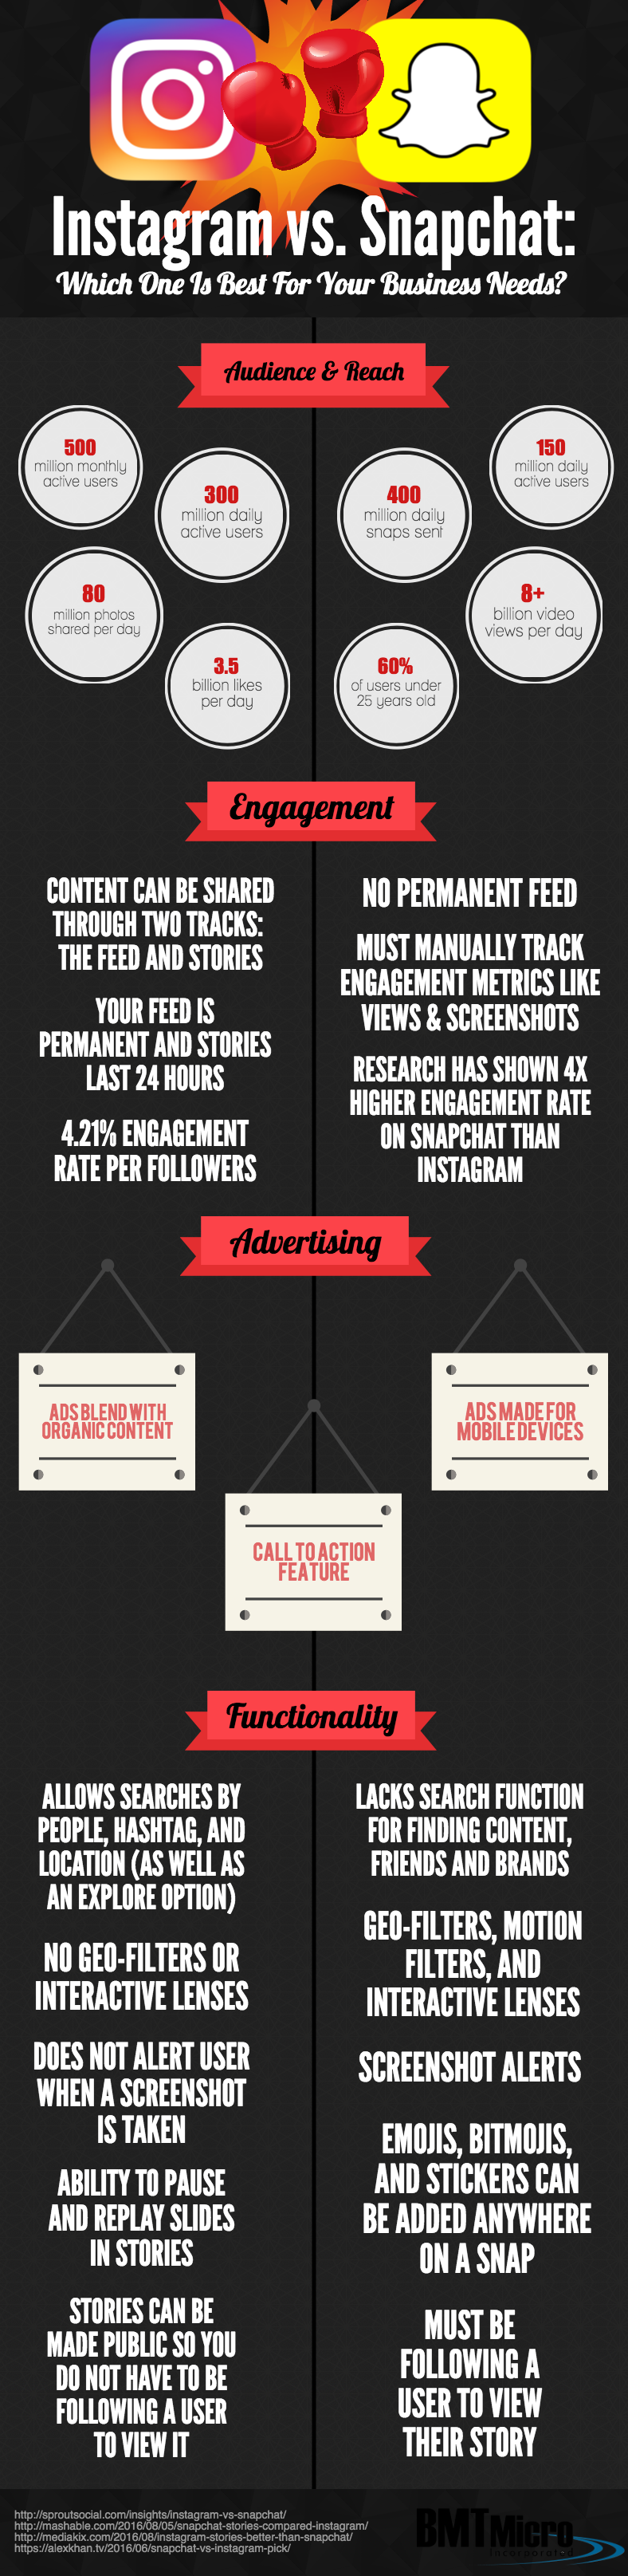 instagram-vs-snapchat-infographic-bmt-micro